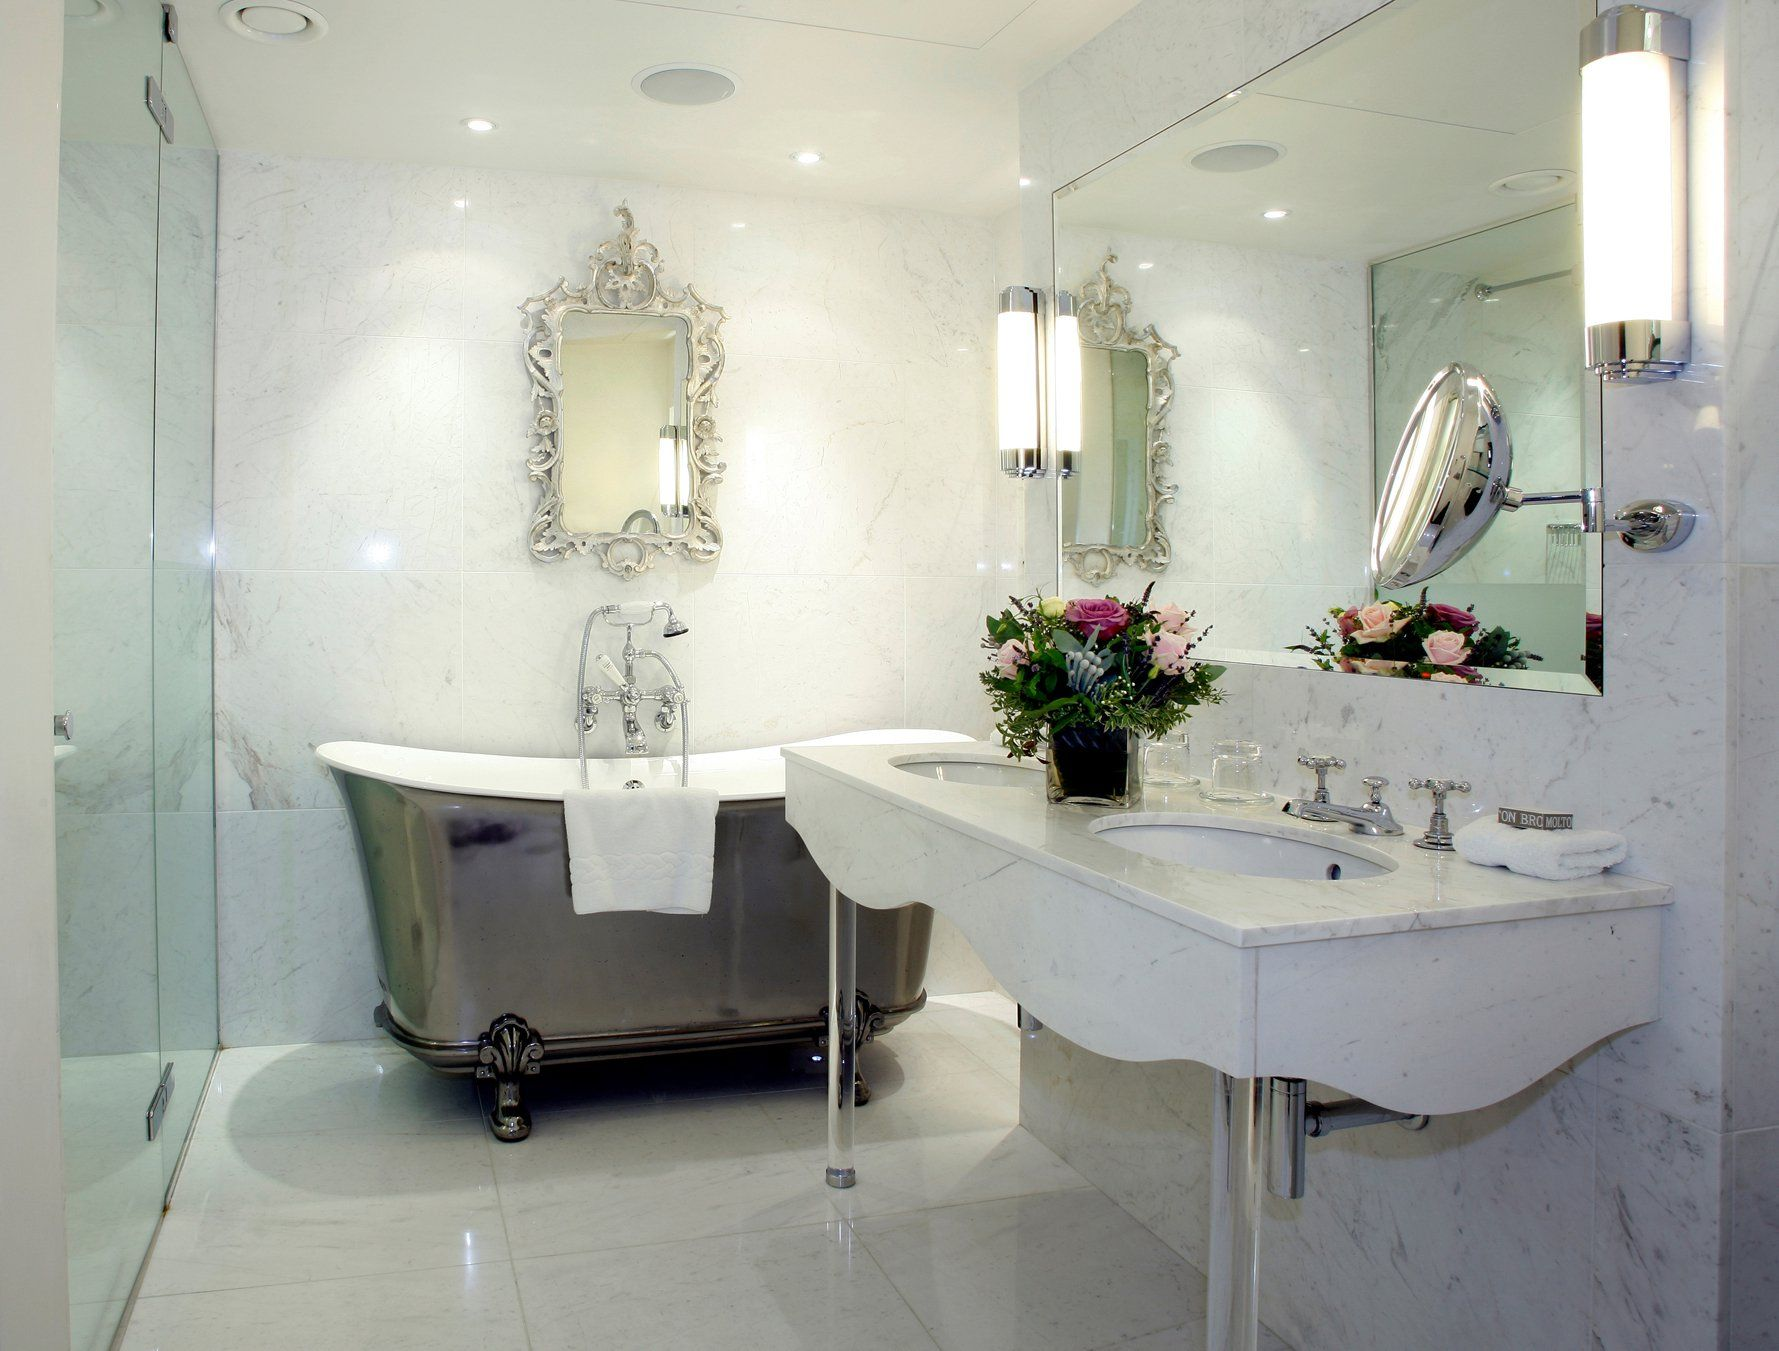 luxury-interior-bathroom-renovation-ideas-to-try-in-your-home-decor ...